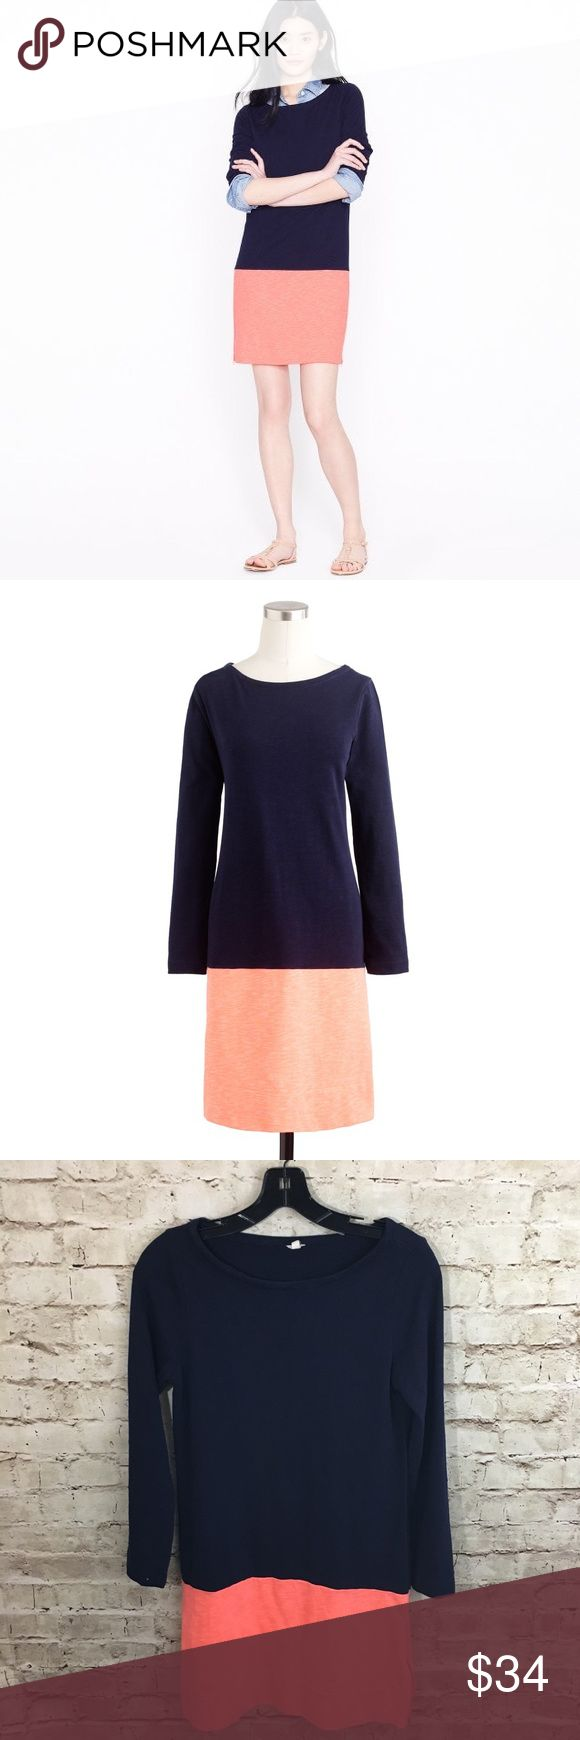 "J Crew Maritime Colorblock Dress Navy Coral XS J Crew Maritime Colorblock Dress in Size XS! Navy long sleeve top with orange coral bottom with side zips in both sides! The cutest dress can be worn with a collared shirt under or alone! Armpit to armpit is 16"", hips 17.25"" across. 100% cotton. Excellent Condition with no holes or stains! Ready to wear! J. Crew Dresses"